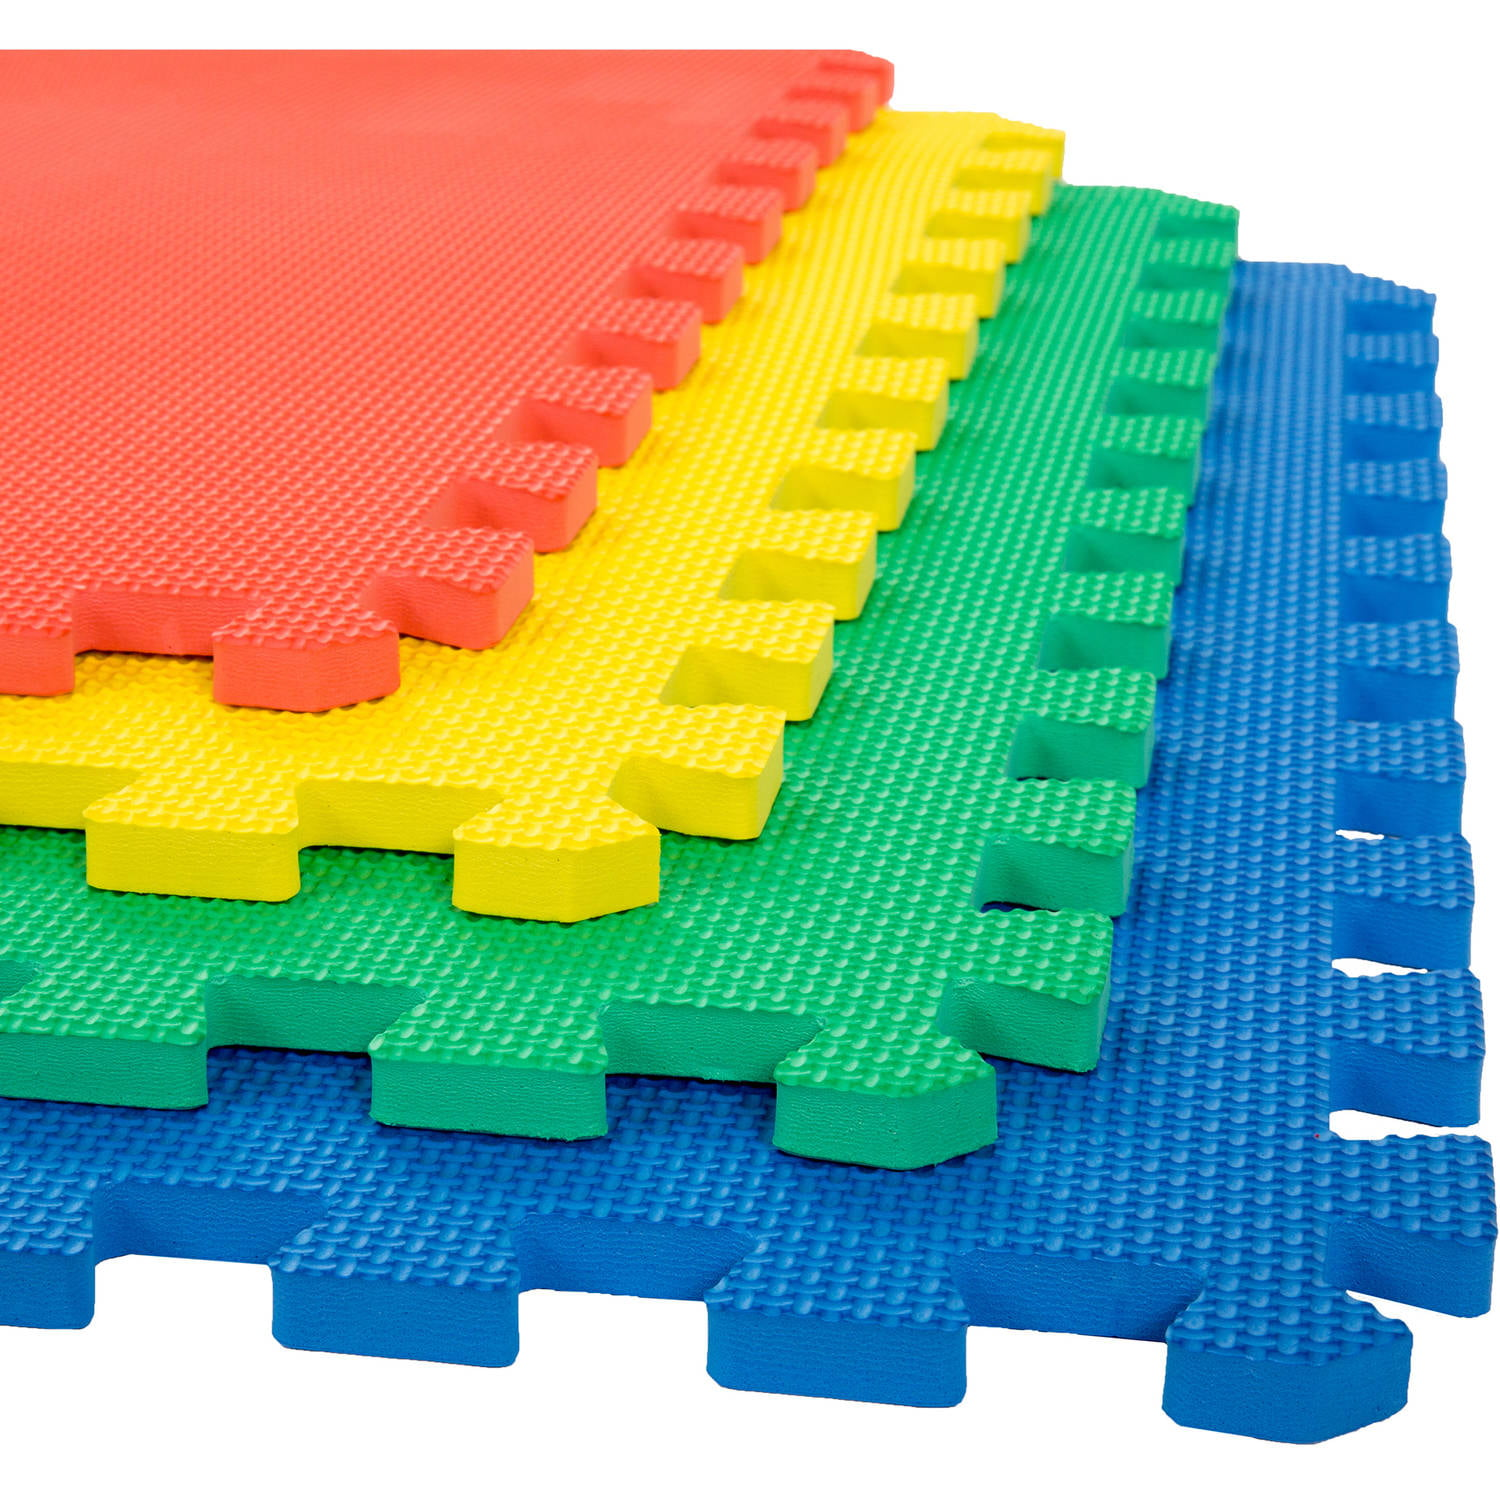 garage flooring eva gym tiles mats interlocking brilliant foam photo floor of prepare play exercise